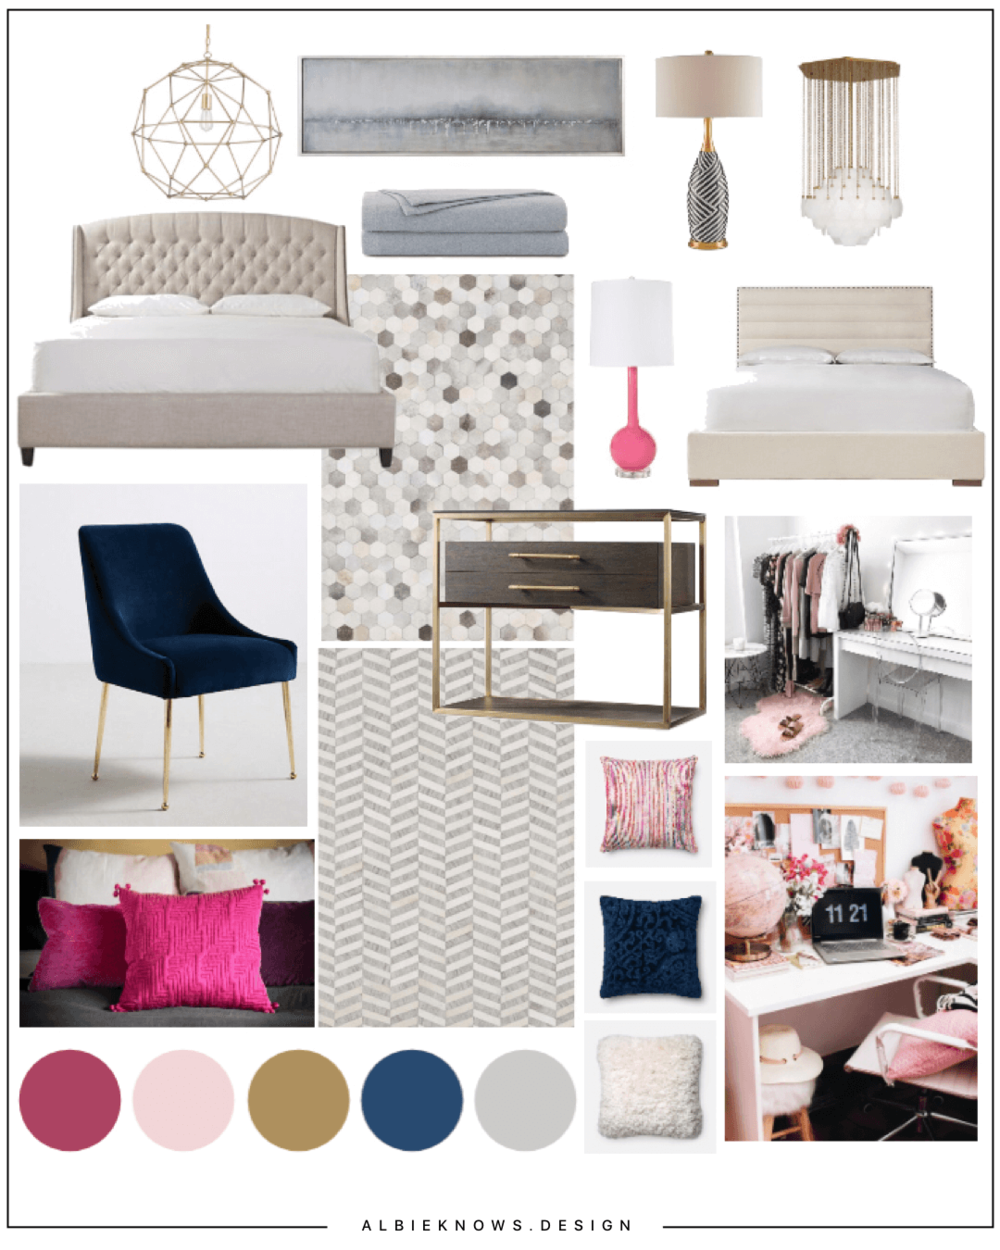 Colorfully Chic Bedroom - A colorful yet chic & inviting design, anchored by cozy textures with pops of color, creating a space that inspires rest without sacrificing style.